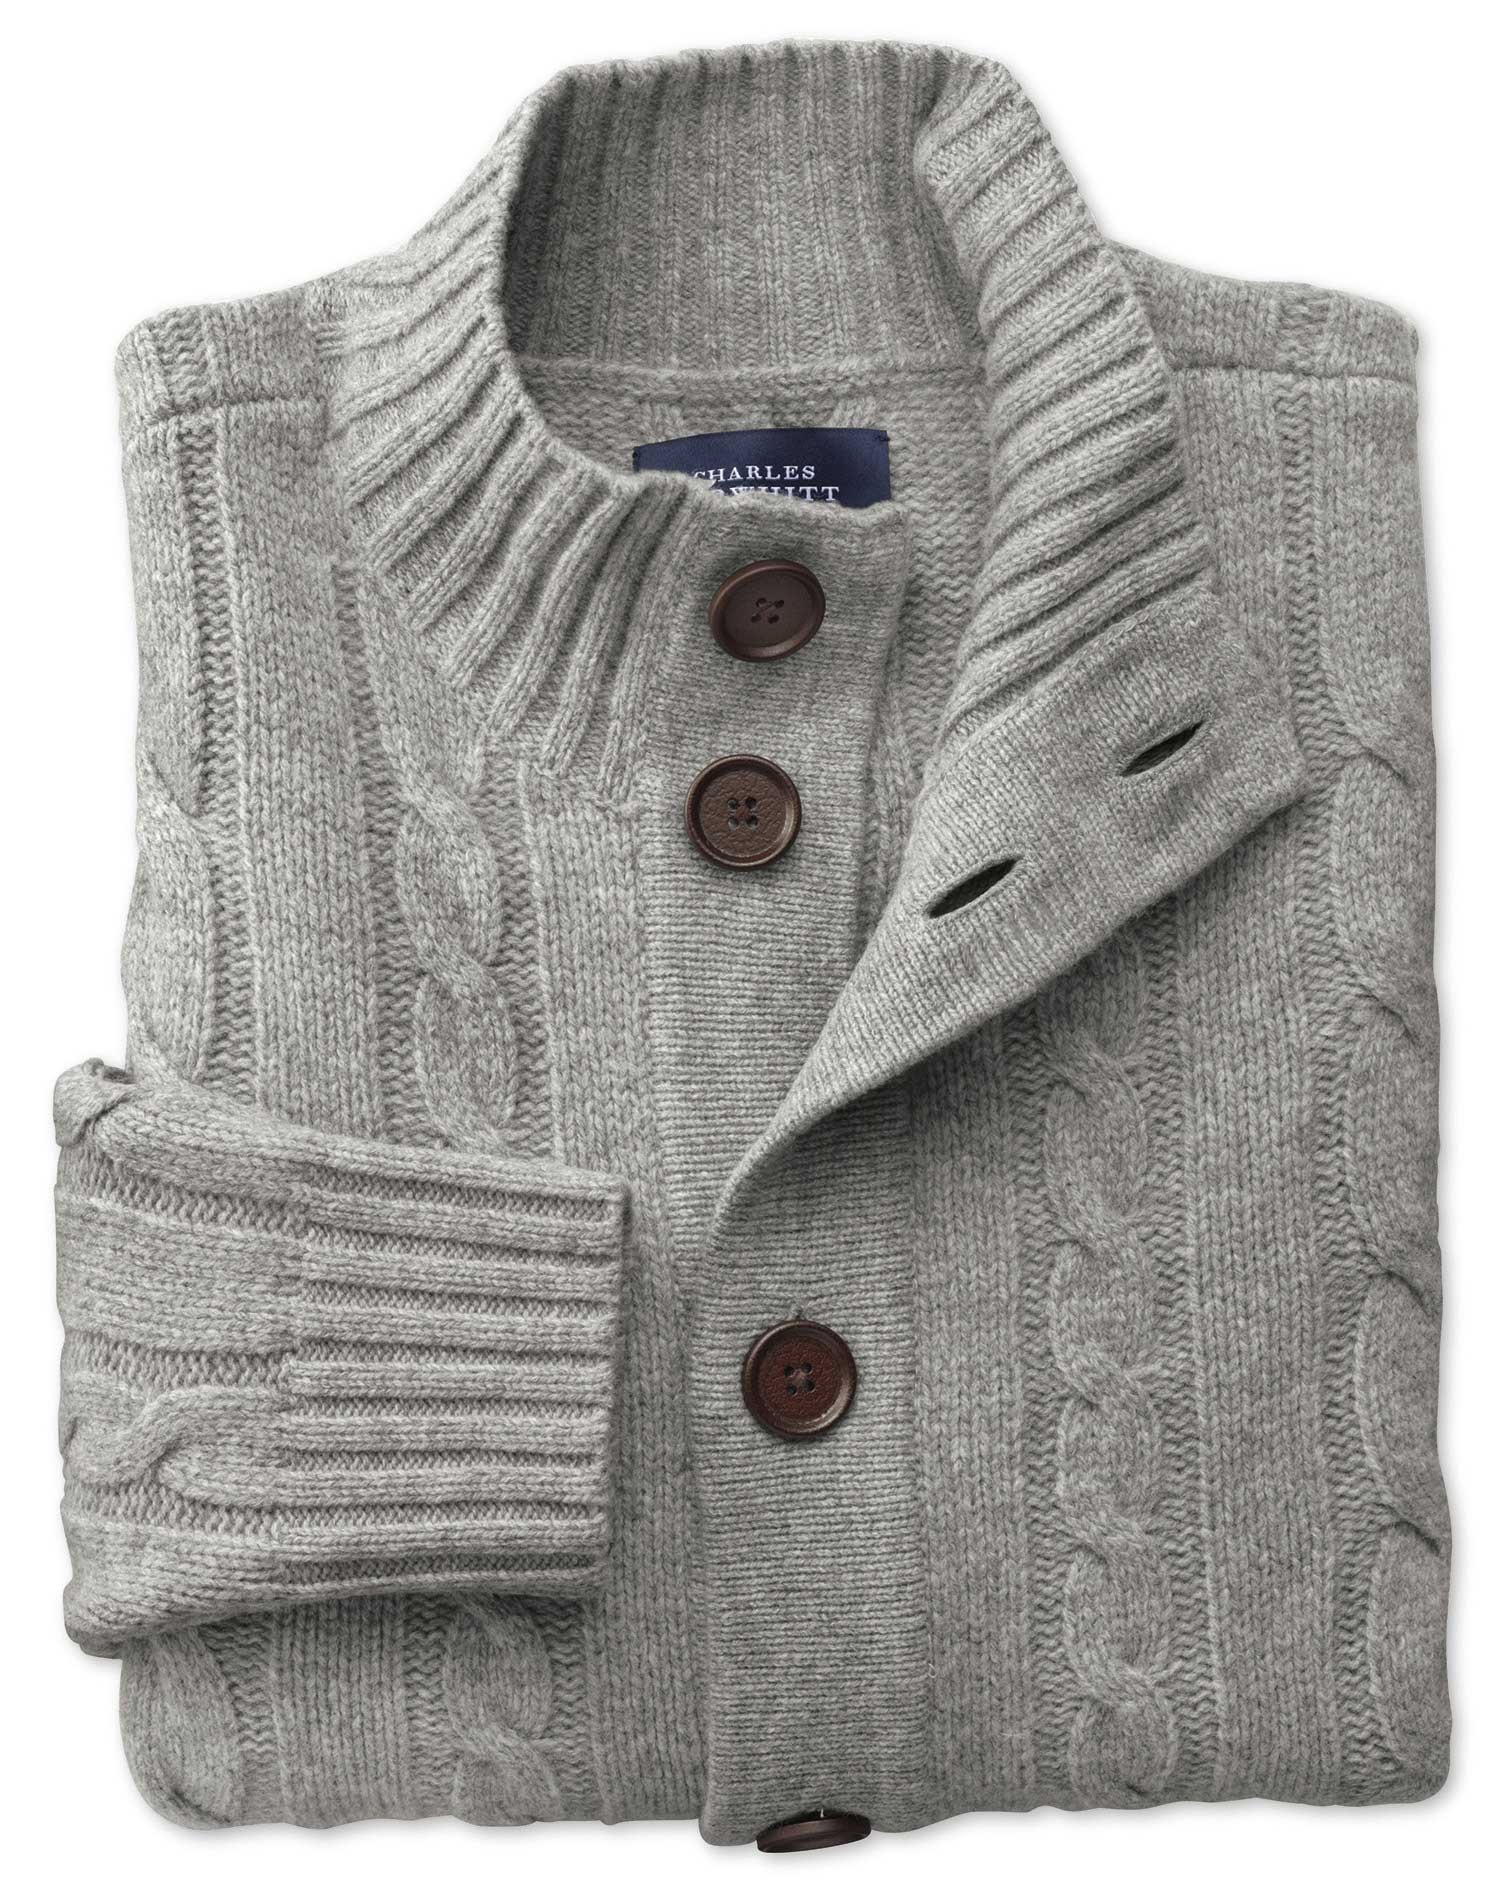 Grey Lambswool Cable Cardigan Size XXXL by Charles Tyrwhitt